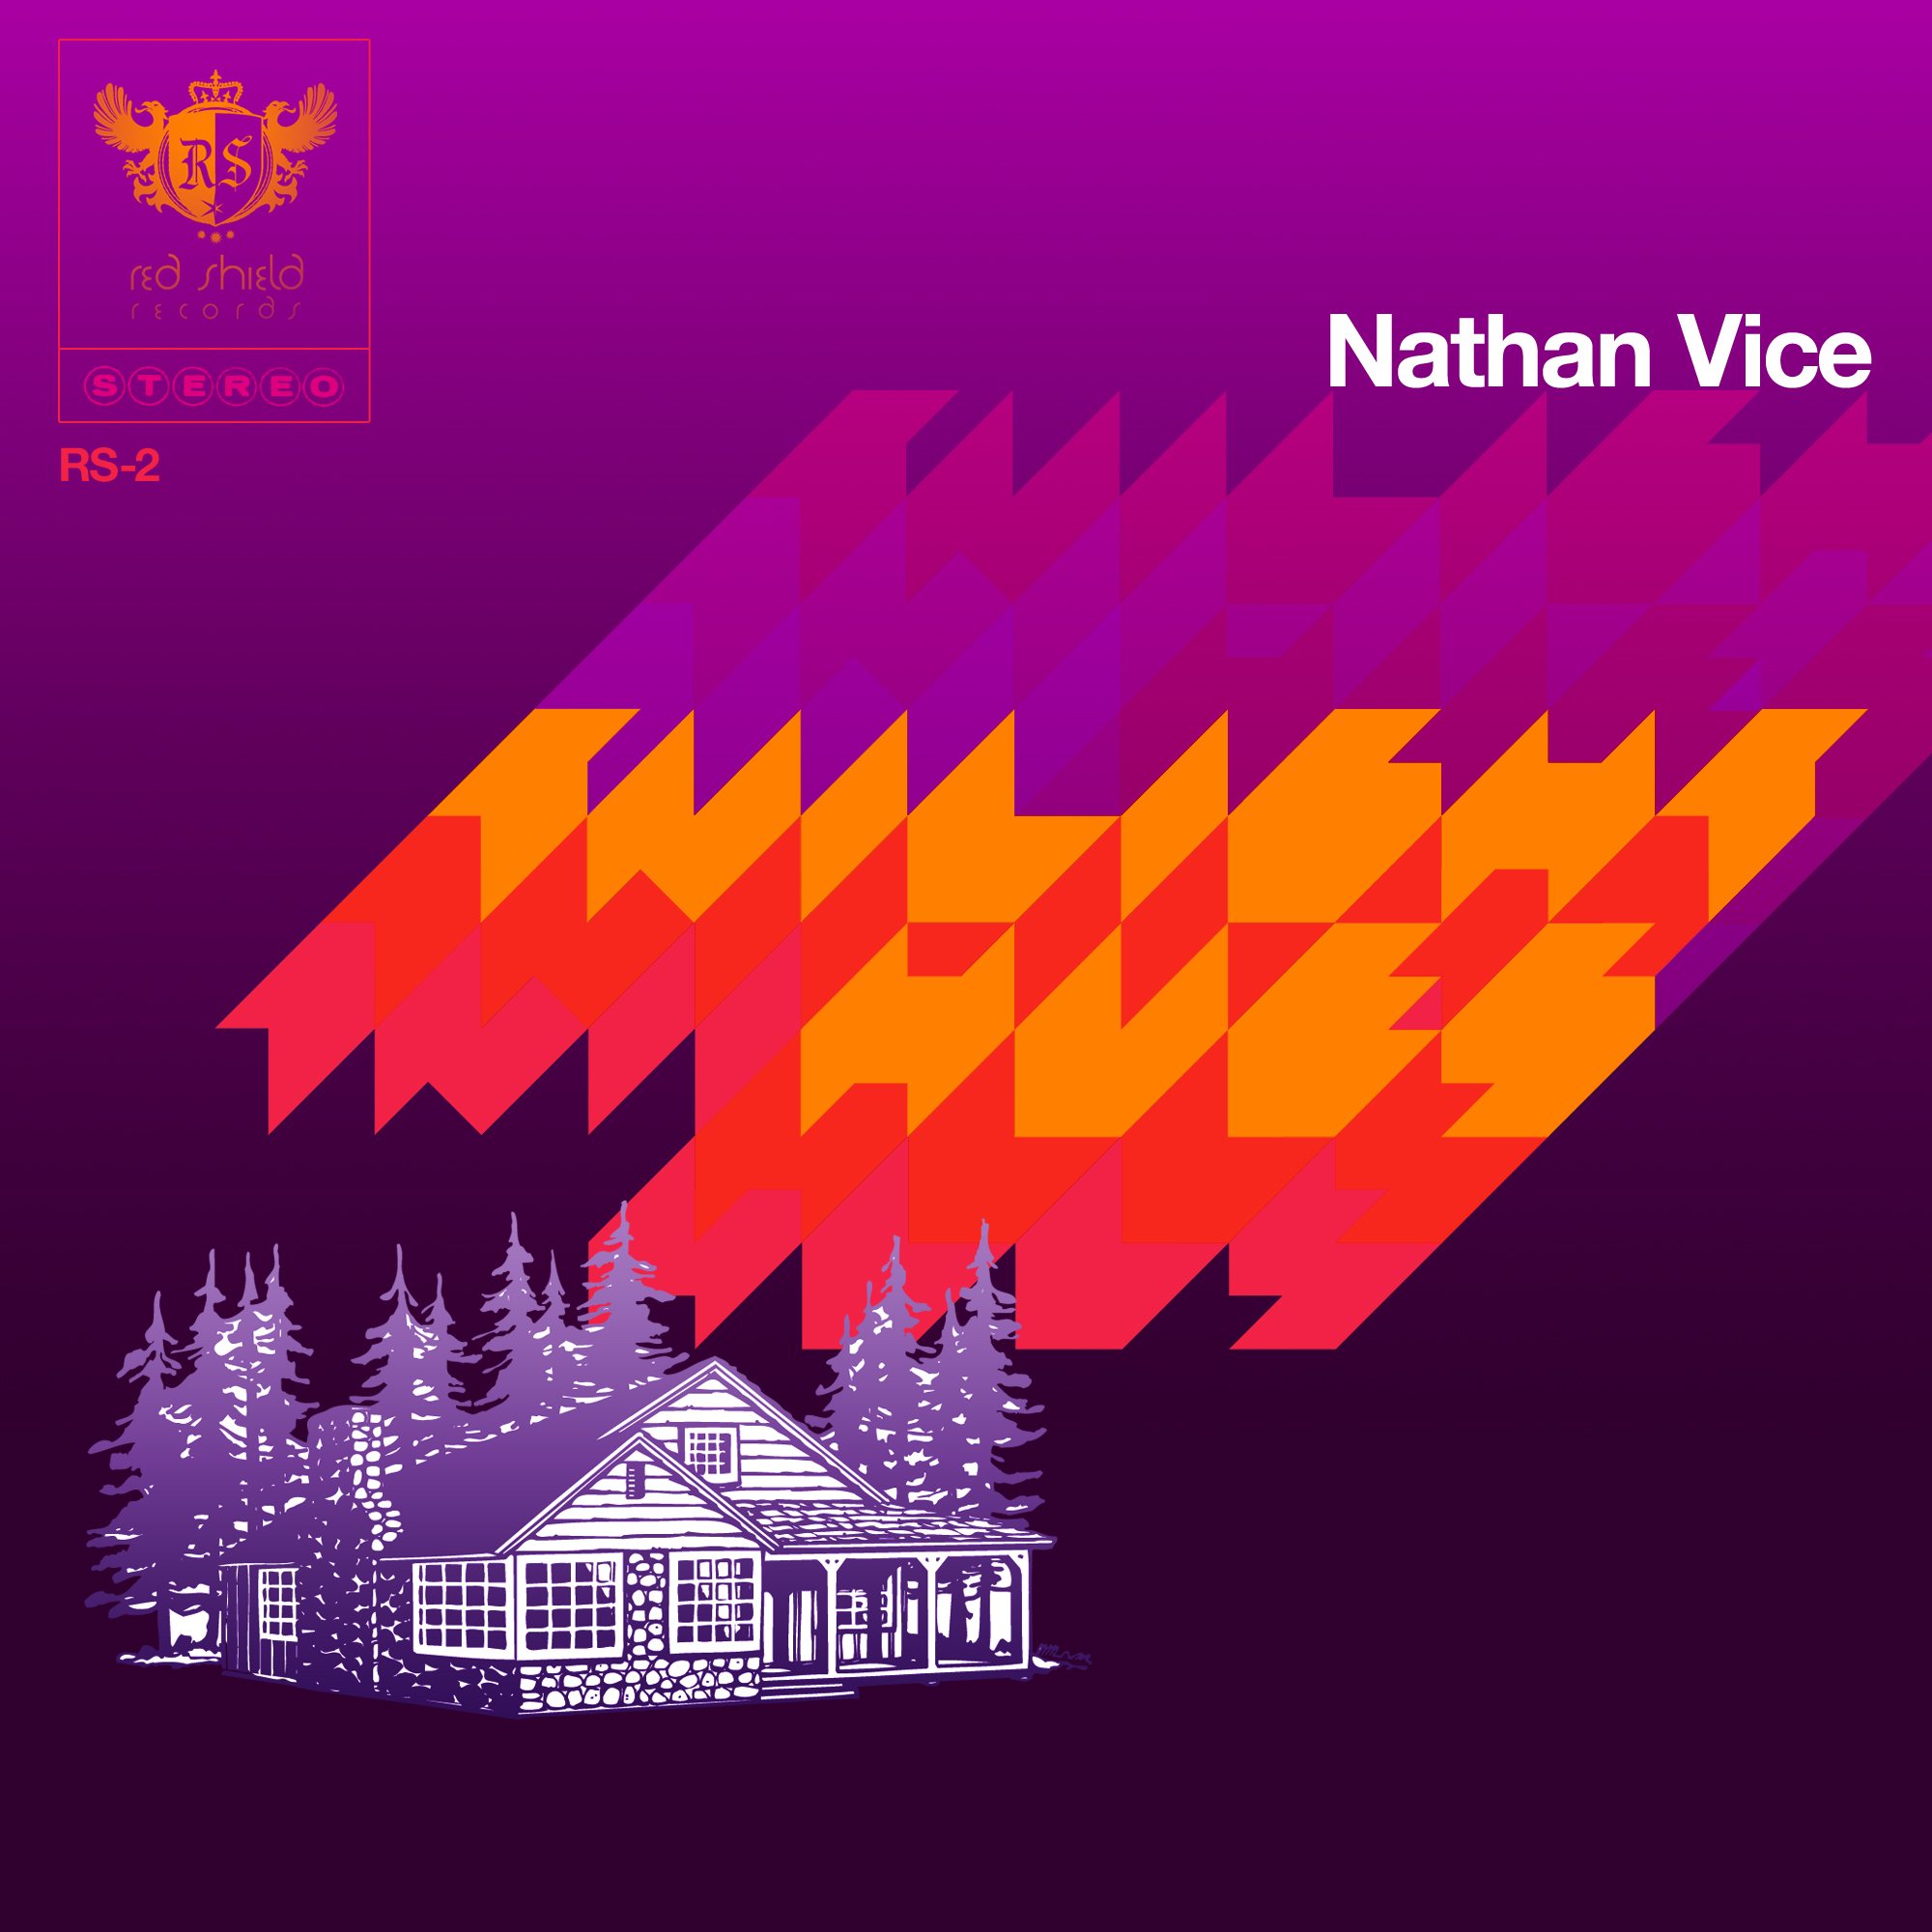 RS-2 Nathan Vice - Twilight hues